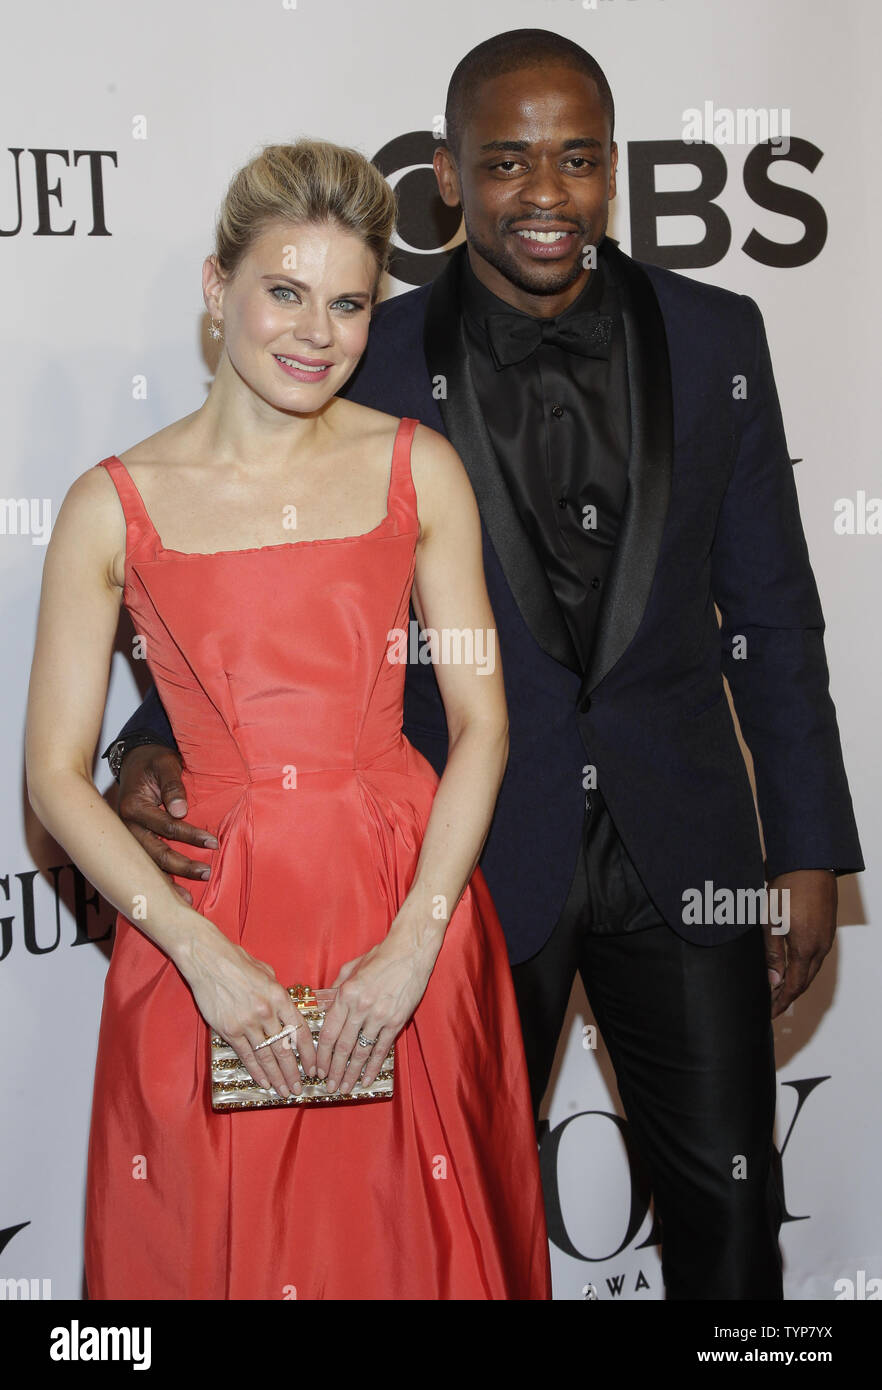 Celia Keenan-Bolger and Dule Hill arrive on the red carpet at the 68th Tony Awards at Radio City Music Hall in New York City on June 8, 2014. The annual awards, which are presented by the American Theatre Wing, recognizes the achievements of Broadway theater.     UPI/John Angelillo. - Stock Image